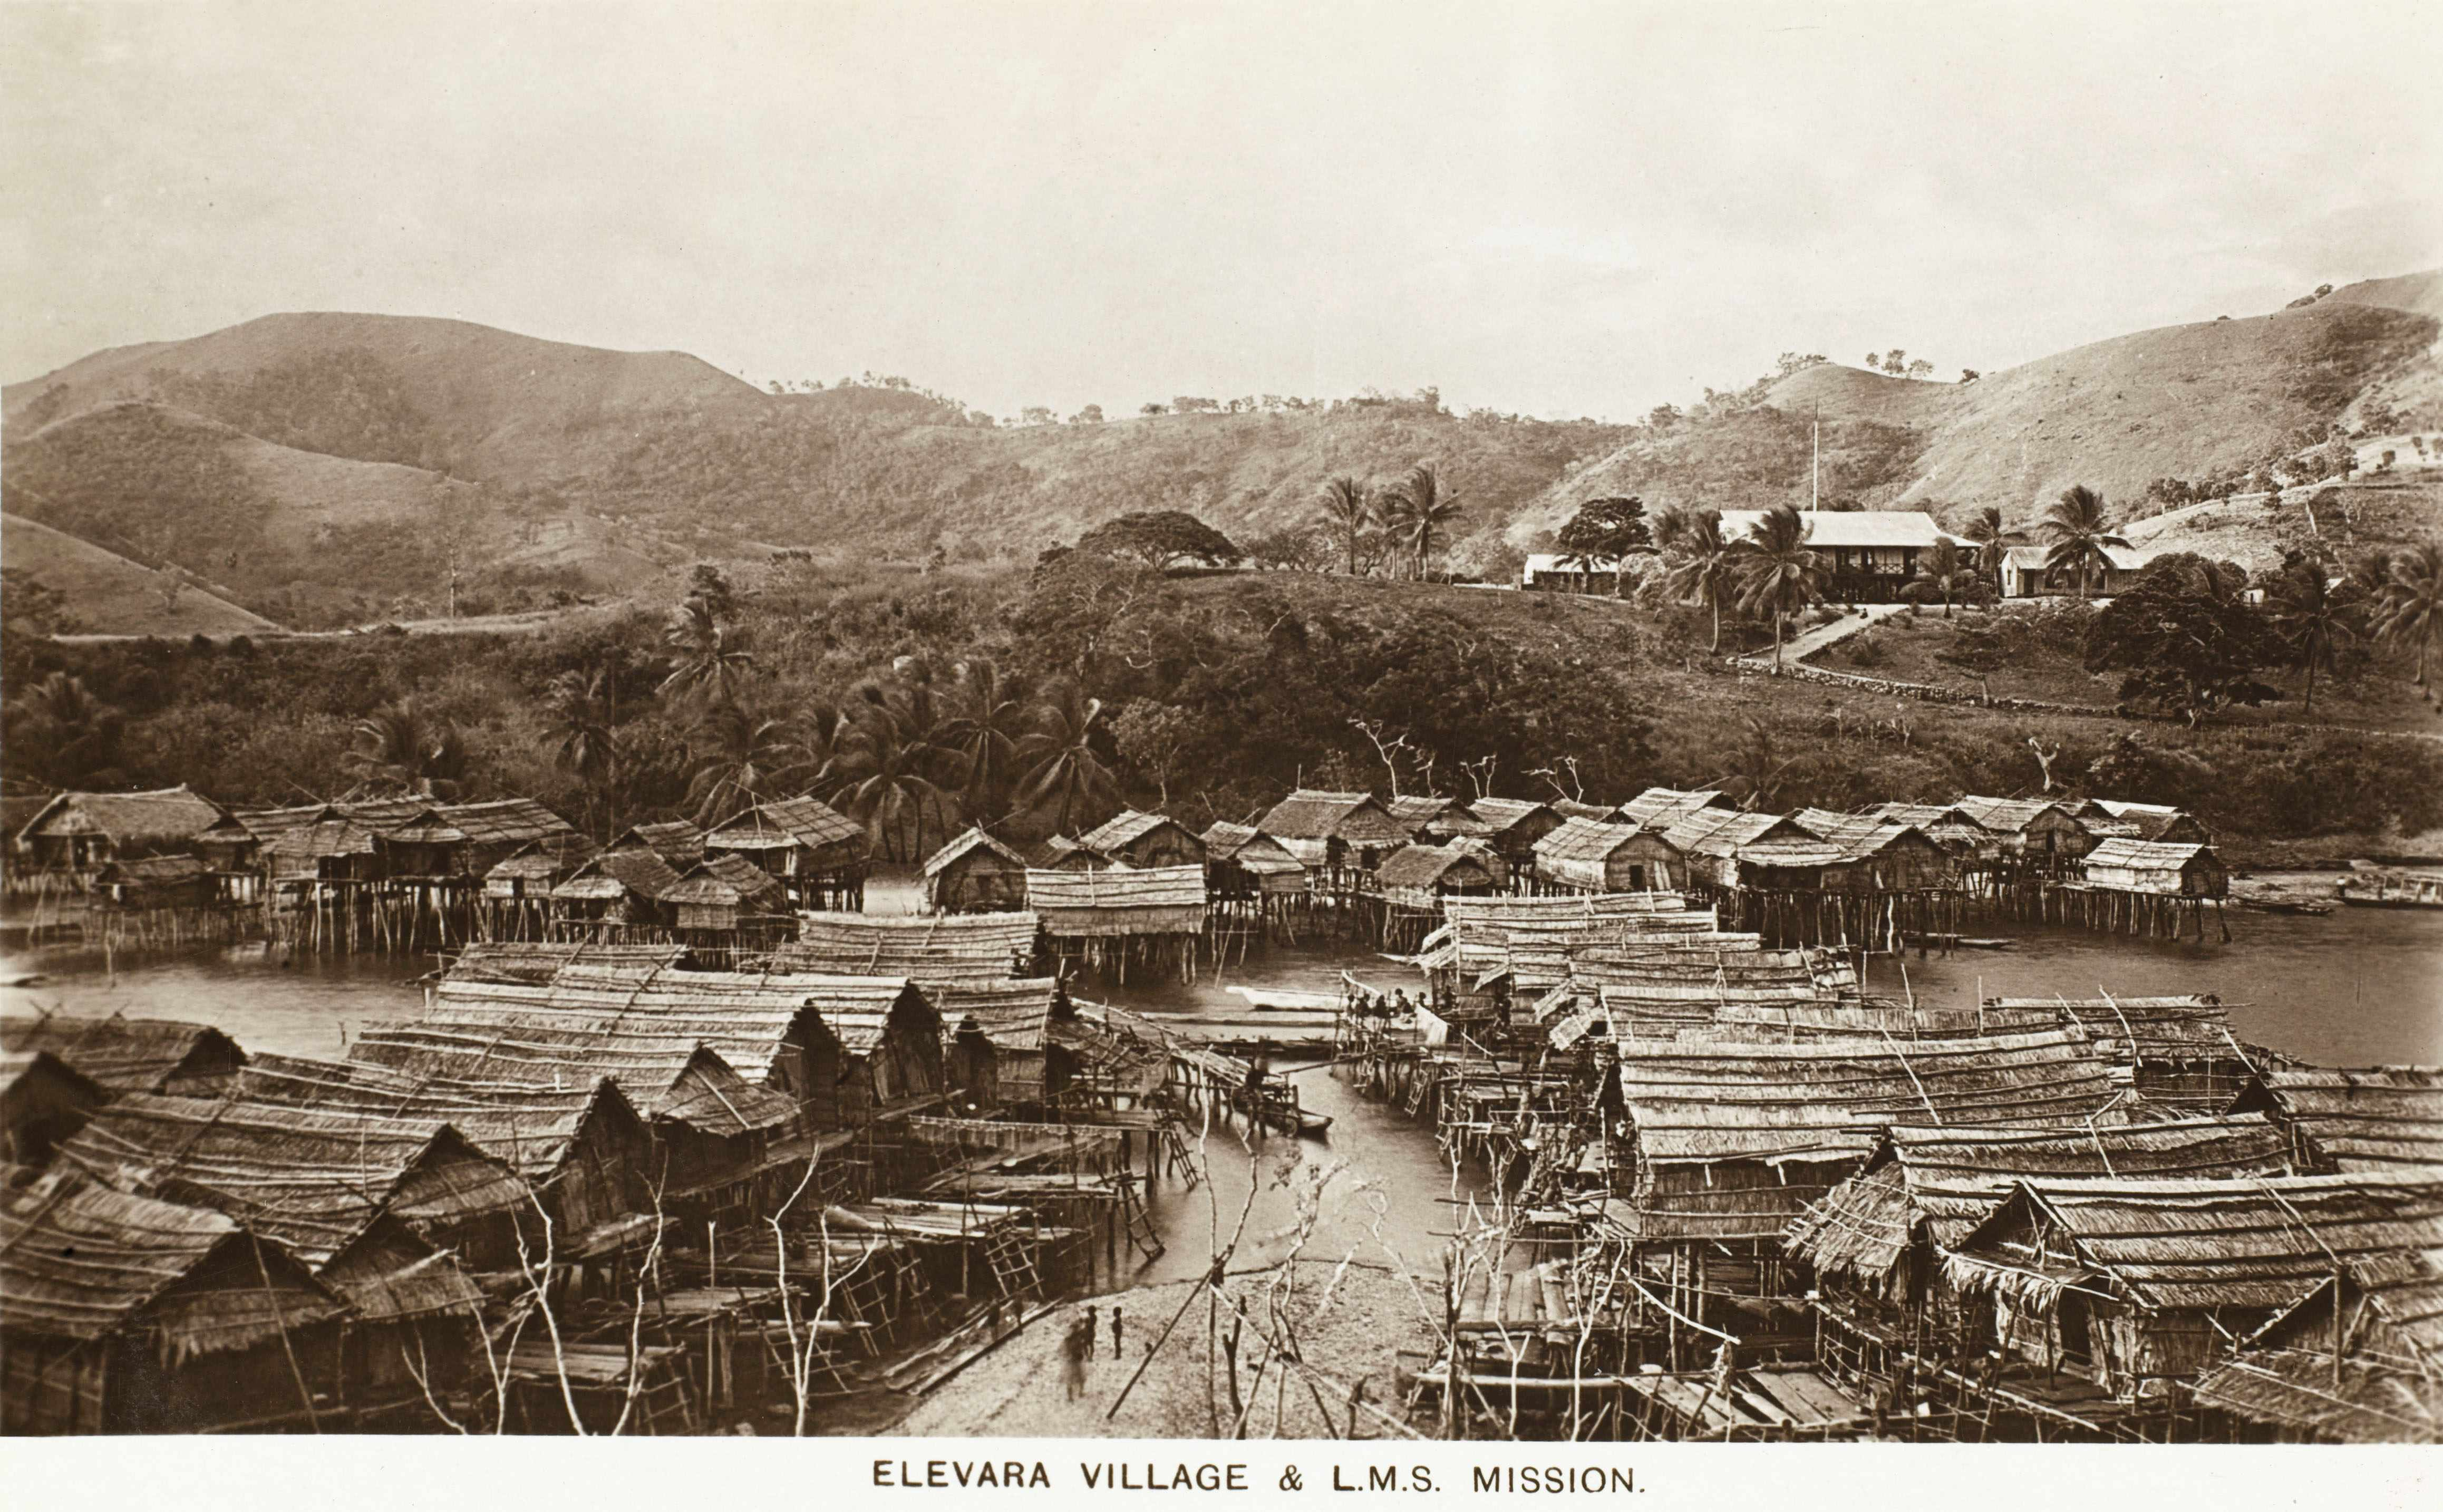 A London Missionary Society (LMS) mission in Papua New Guinea, c1920s. (Photo by Chronicle/Alamy Stock Photo)